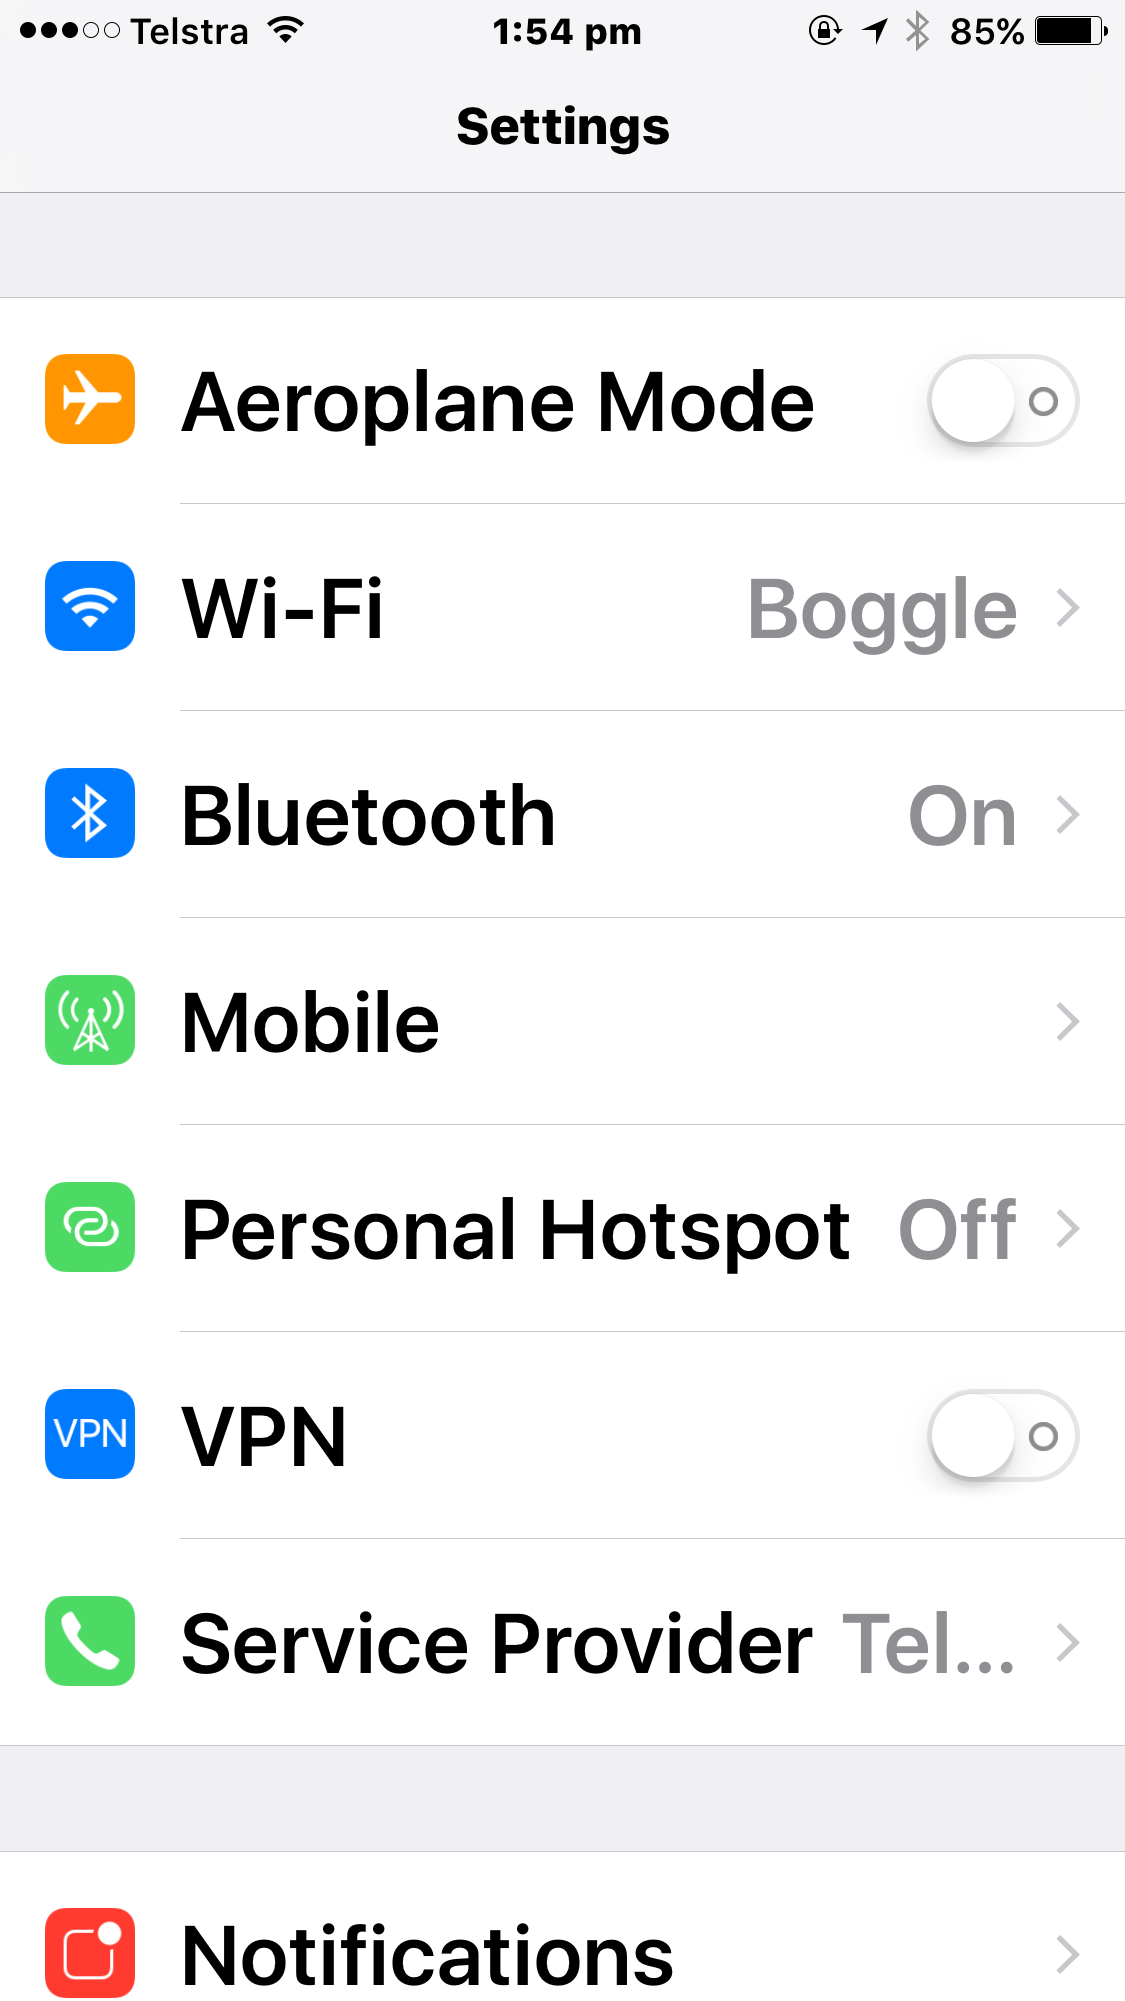 iPhone settings screen with large bold text